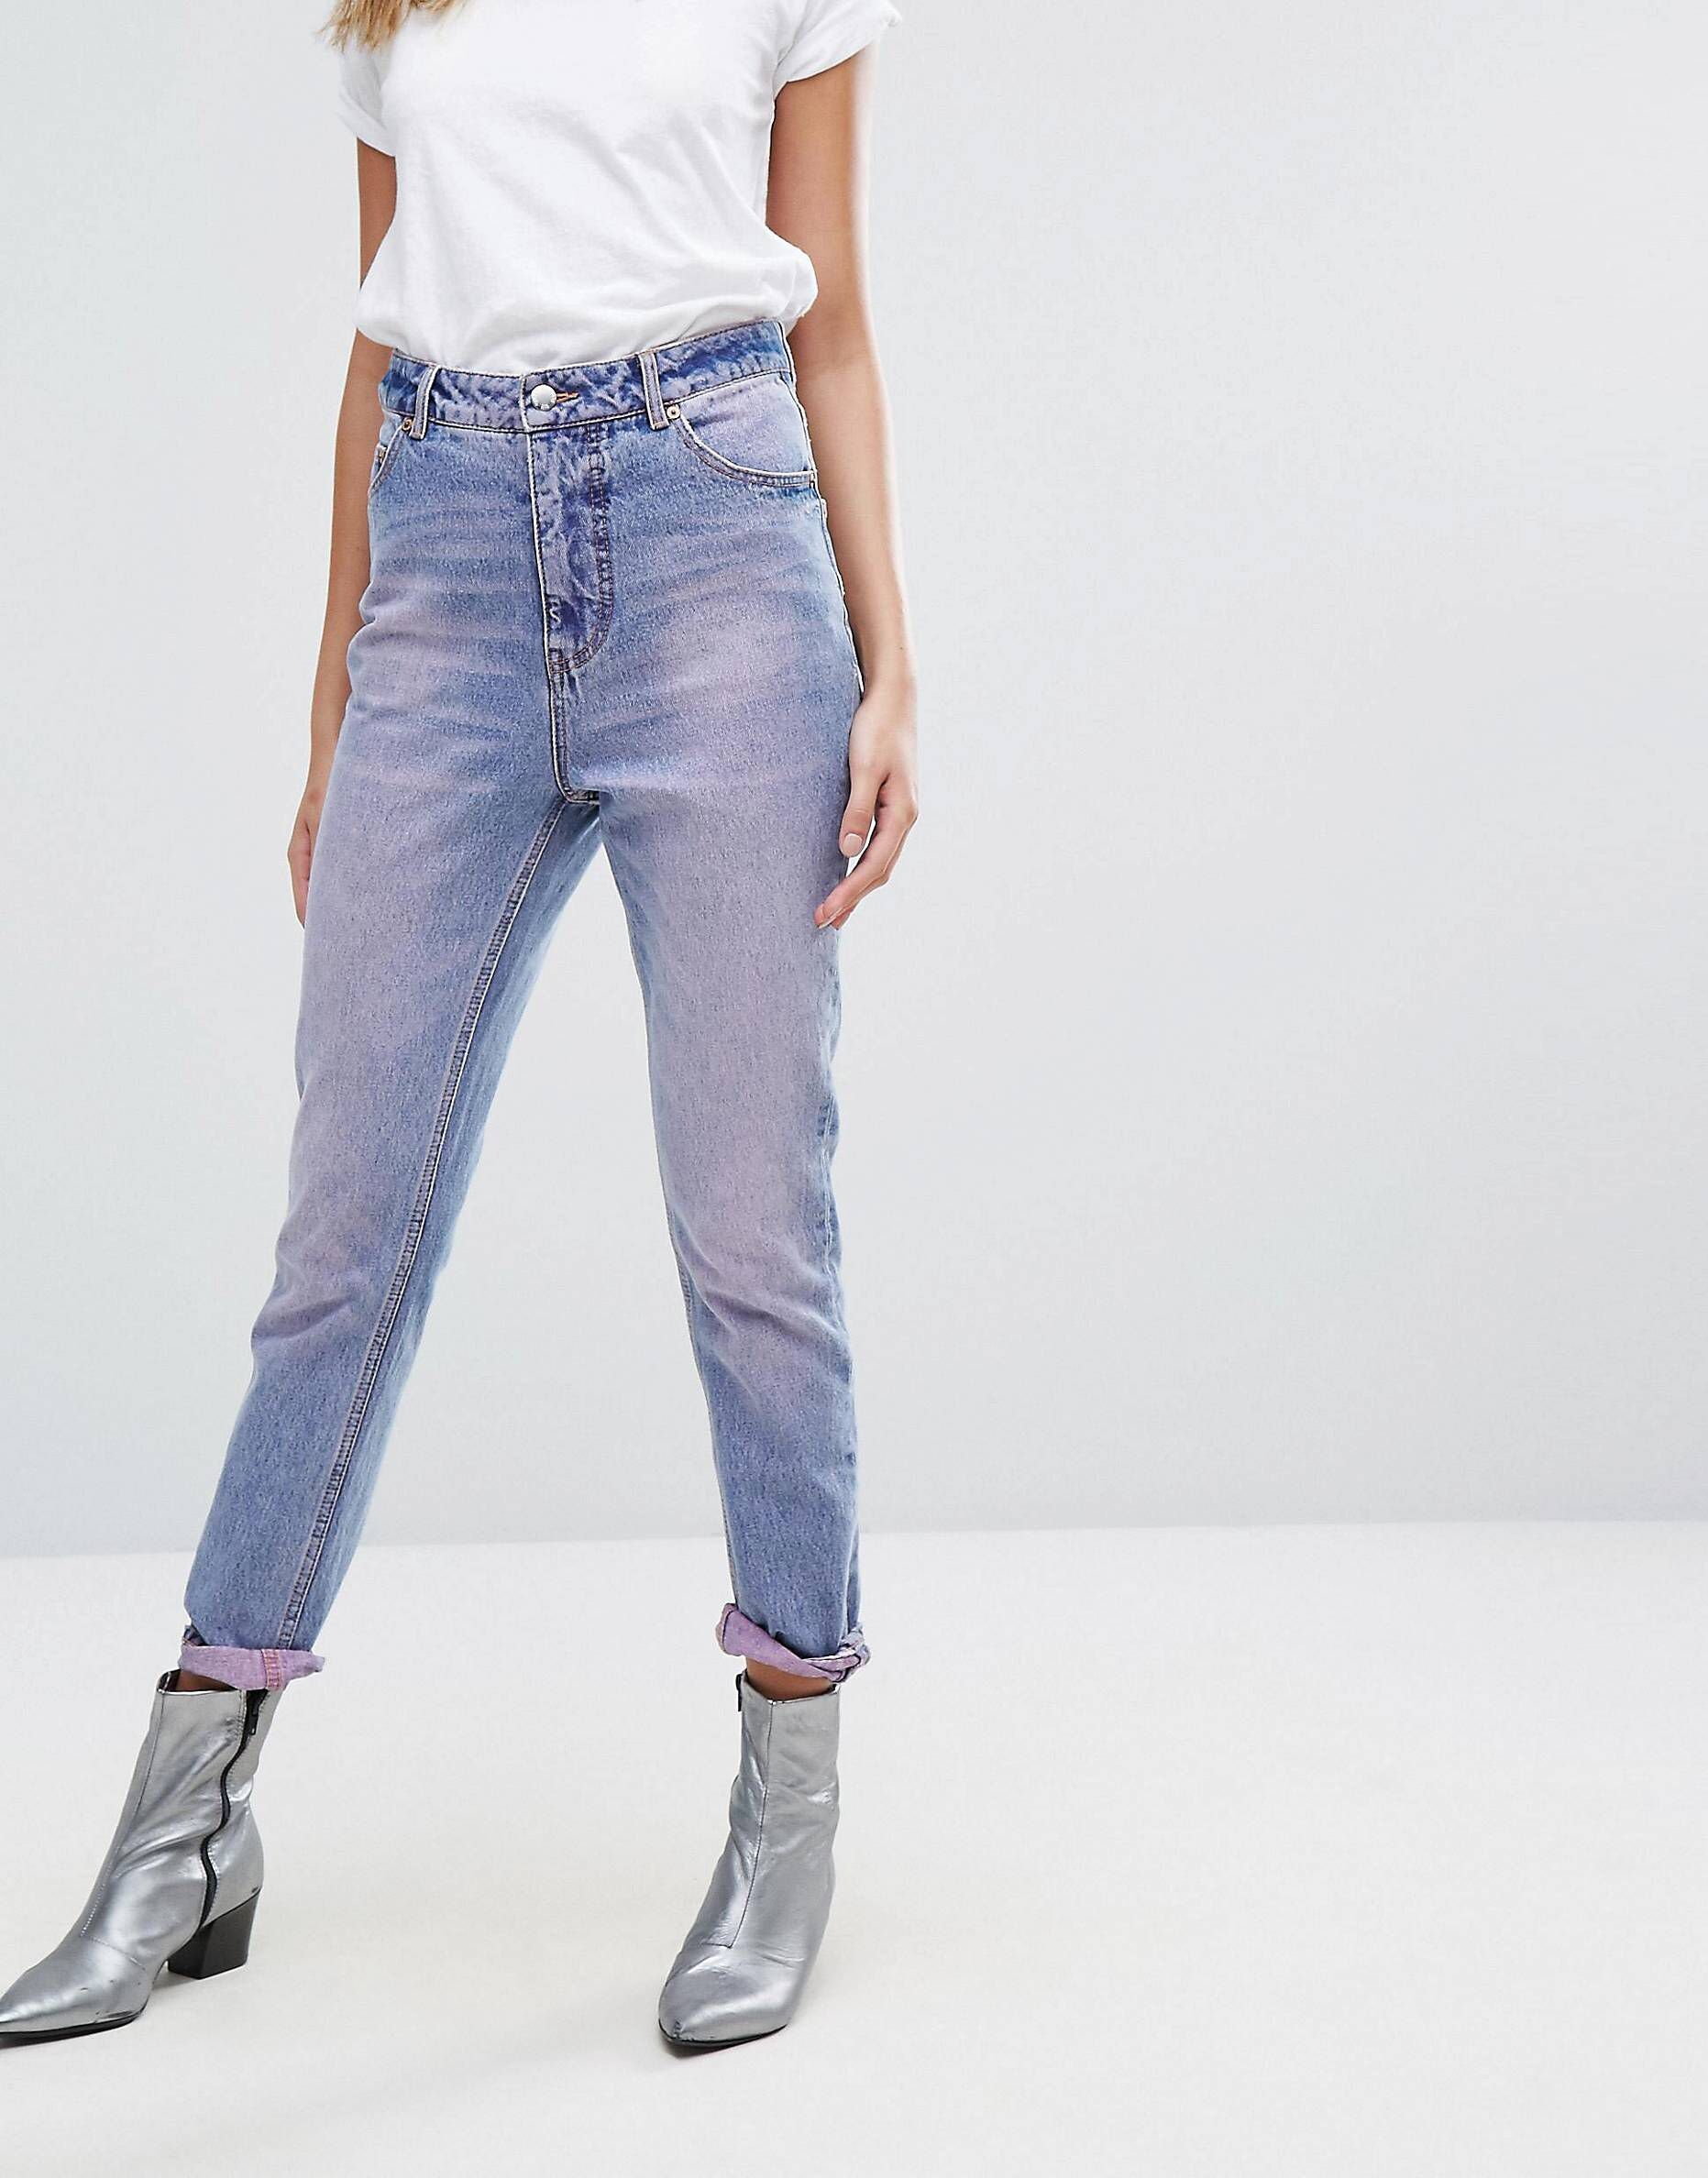 05180999a41d Just when I thought I didn't need something new from ASOS, I kinda ...